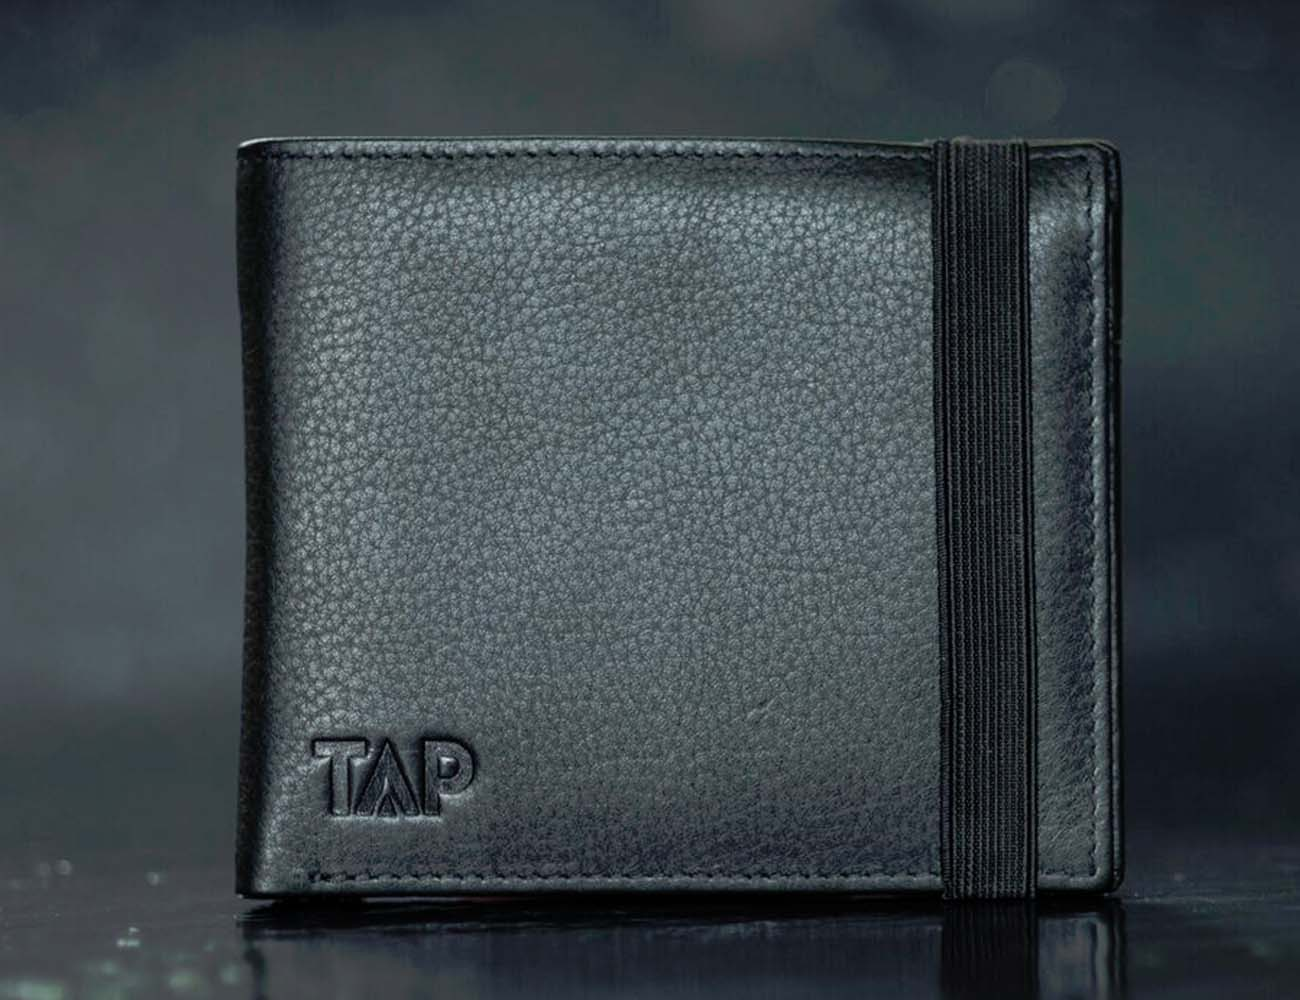 Tap+Wallet+%26%238211%3B+Say+Goodbye+To+Card+Clash+And+Wireless+Theft